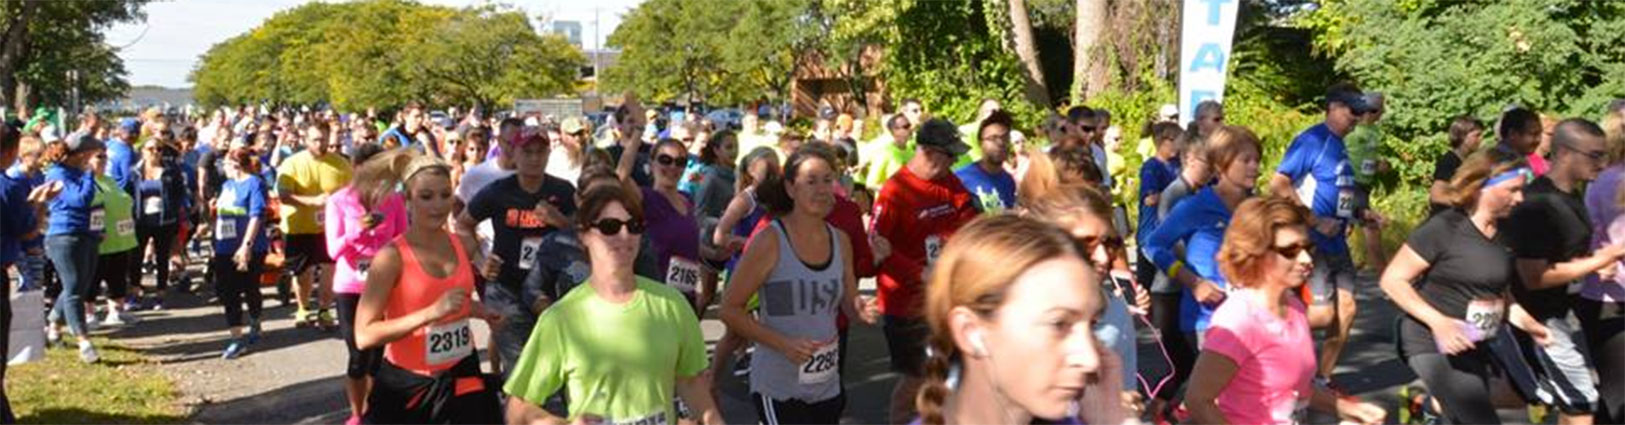 Runners at Crossings 5K Challenge to Benefit Colonie Youth Center